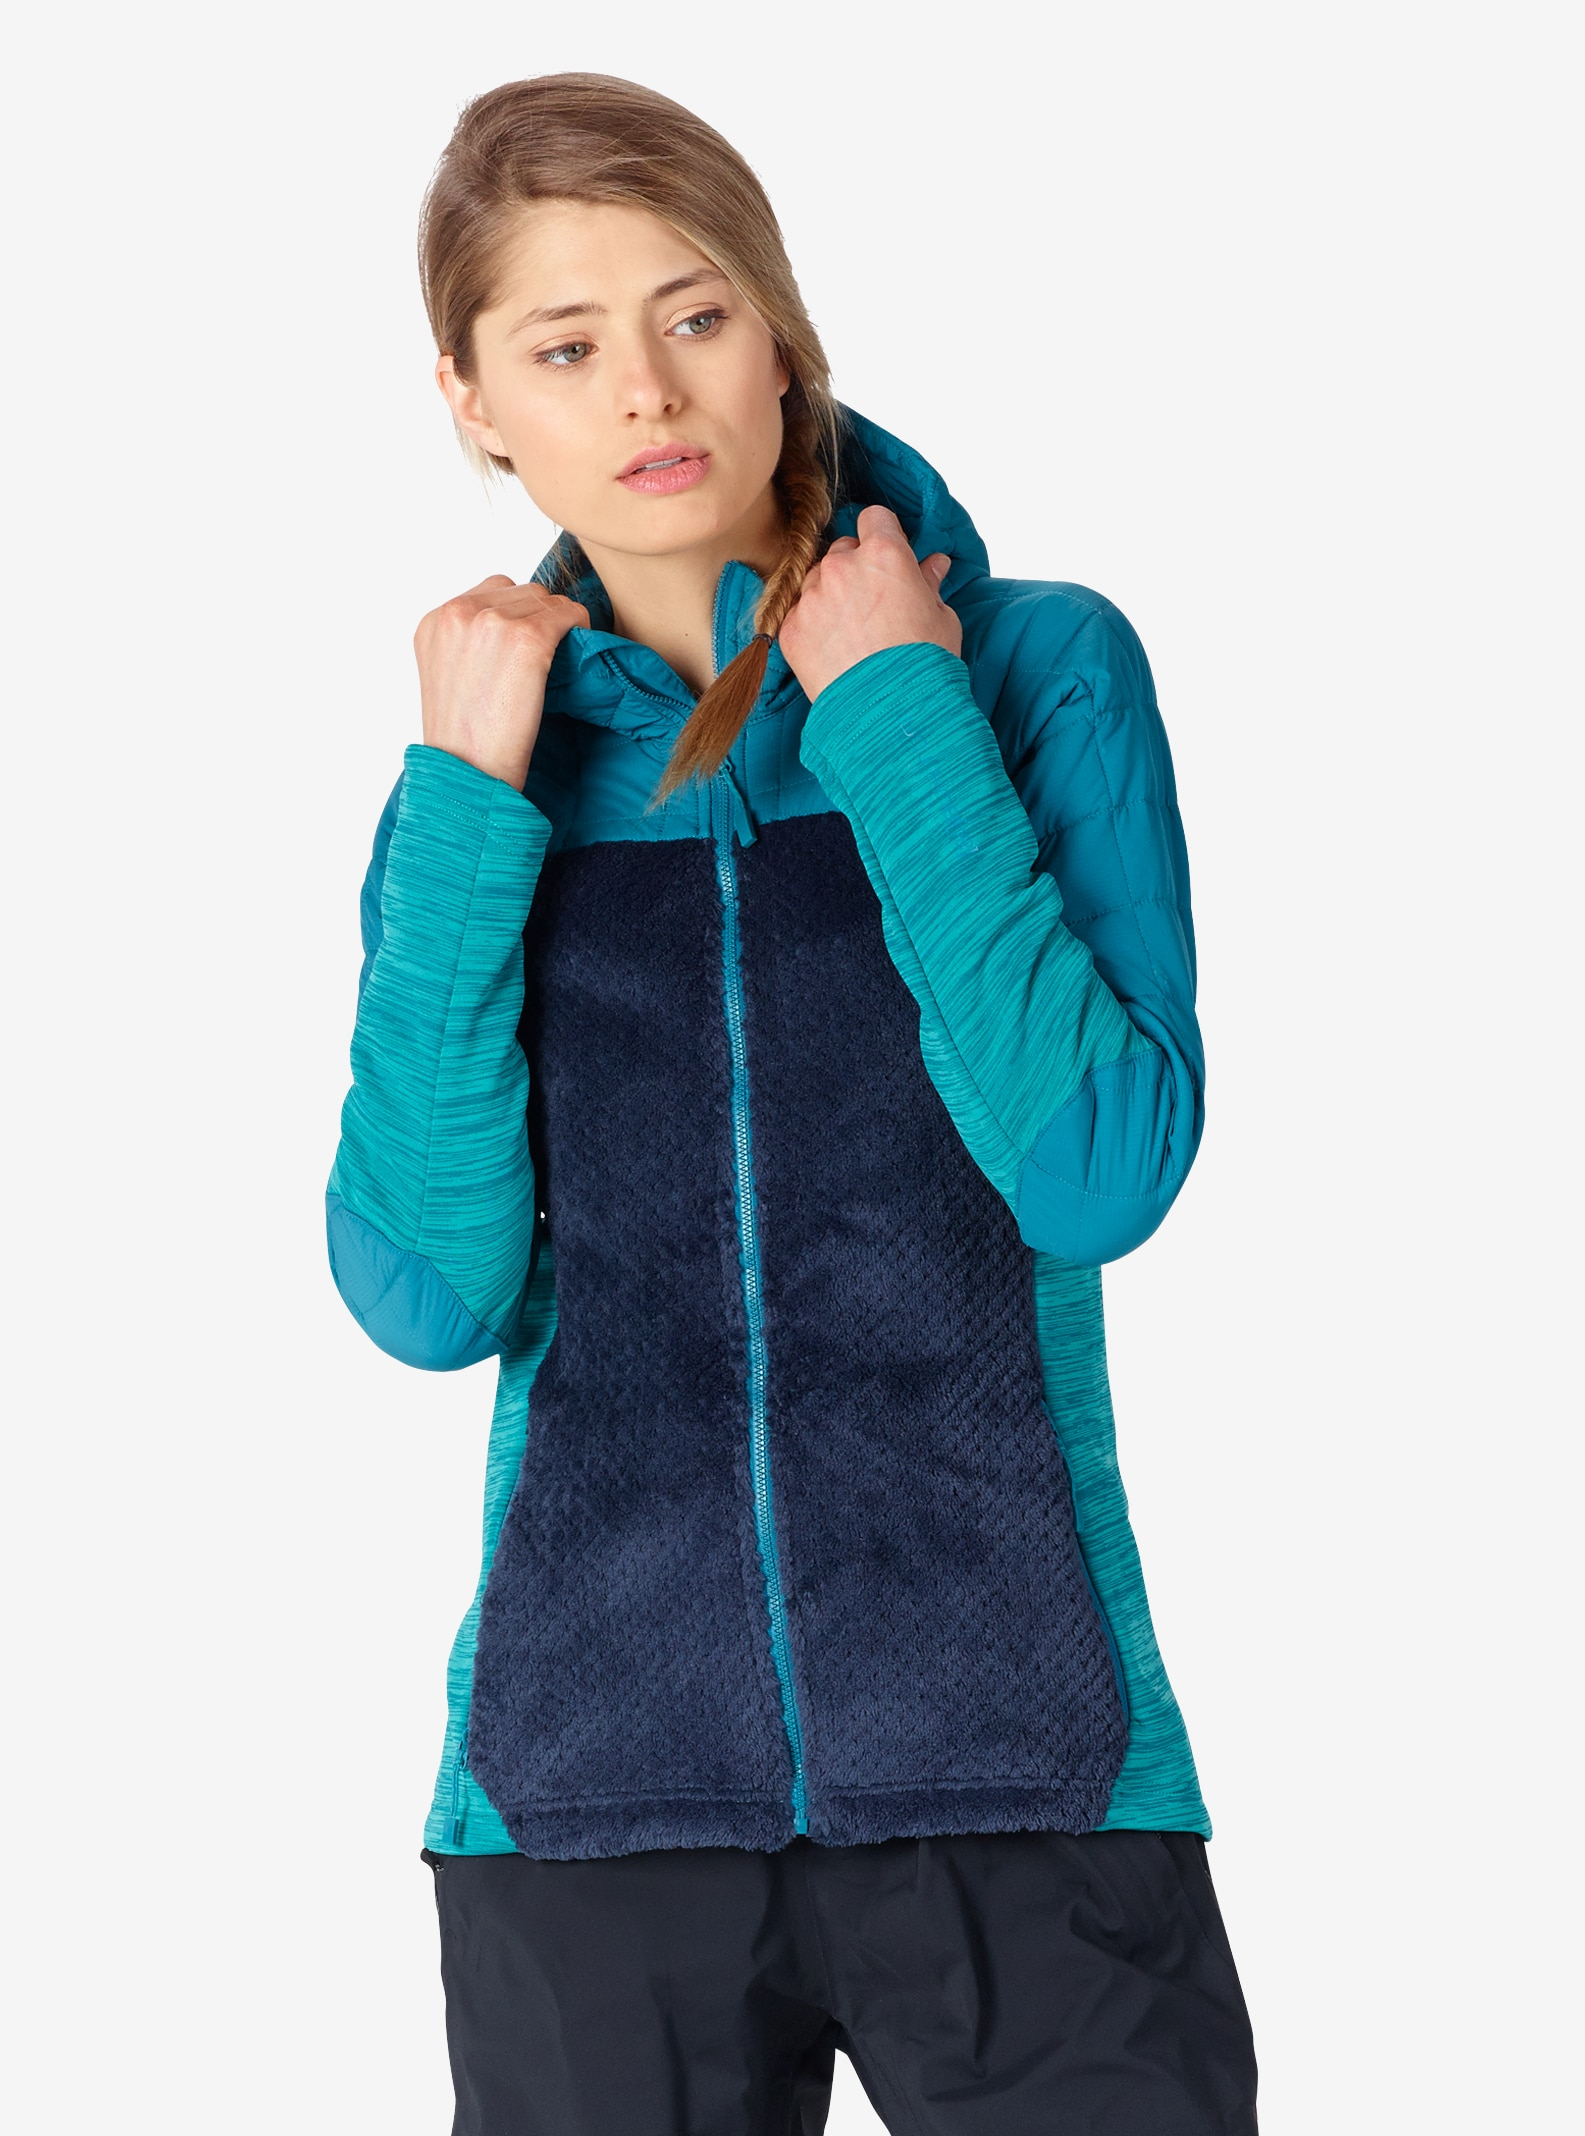 Women's Burton [ak] Zulu Insulator shown in Harbor / Mood Indigo / Spectra